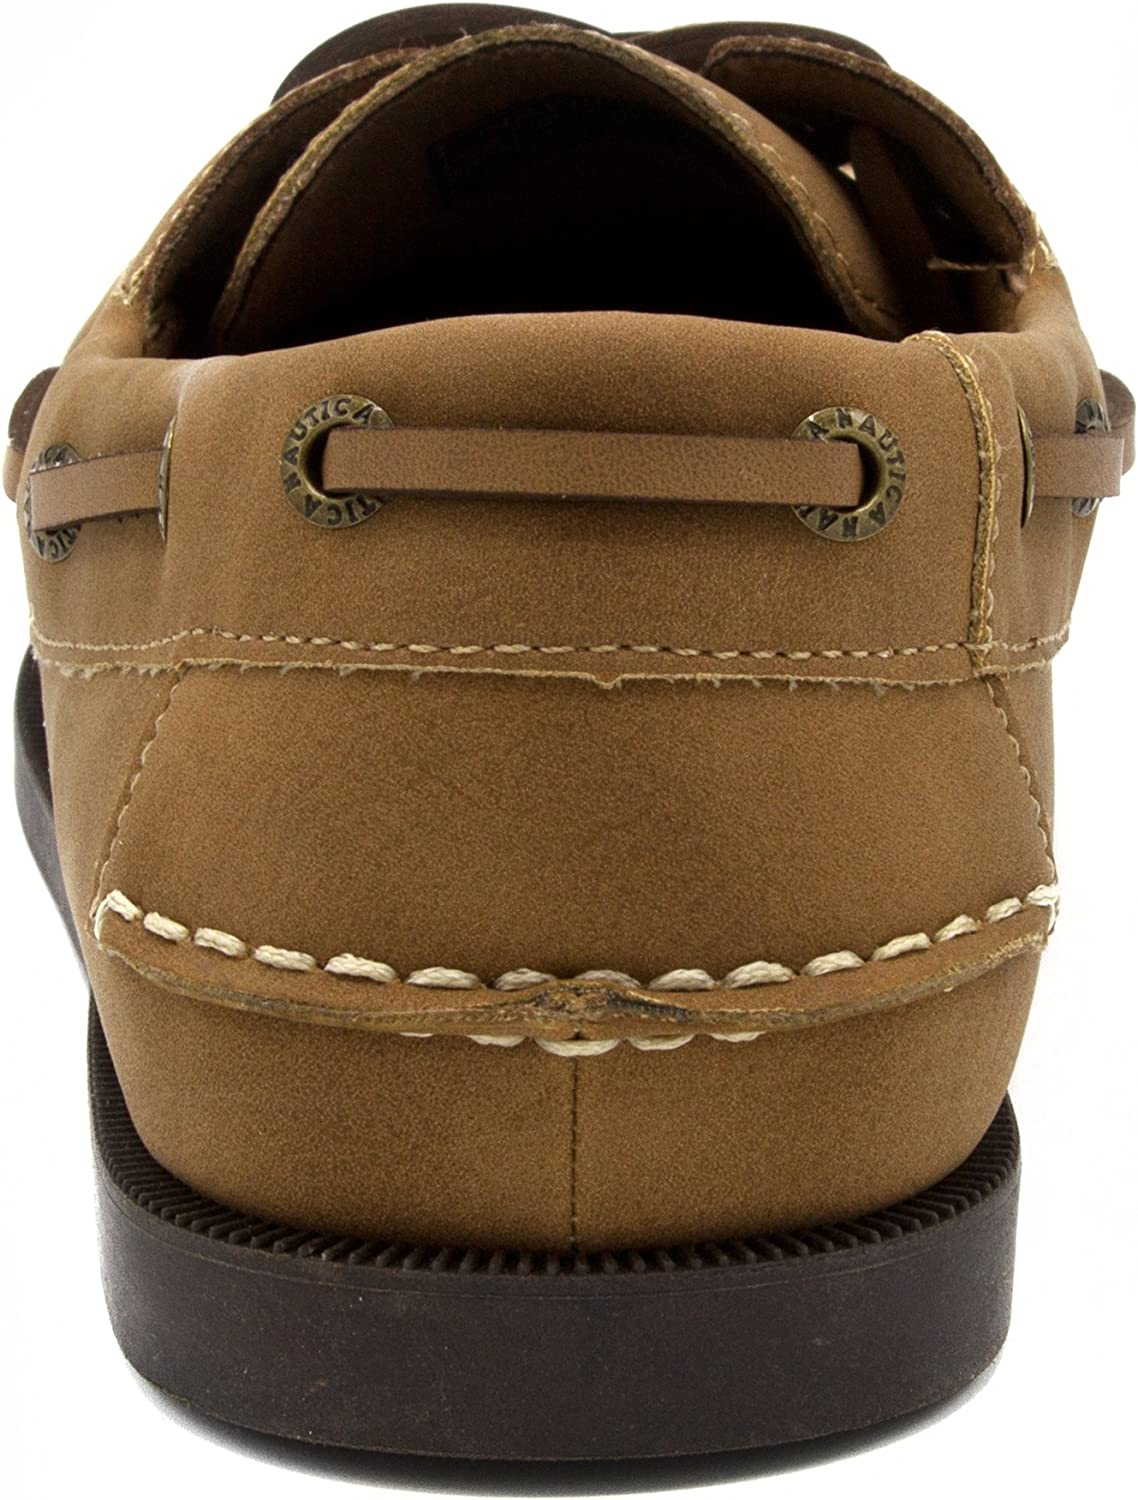 Nautica Mens Nueltin Casual Boat Shoe Loafer 2 Eye Lace Moccasins